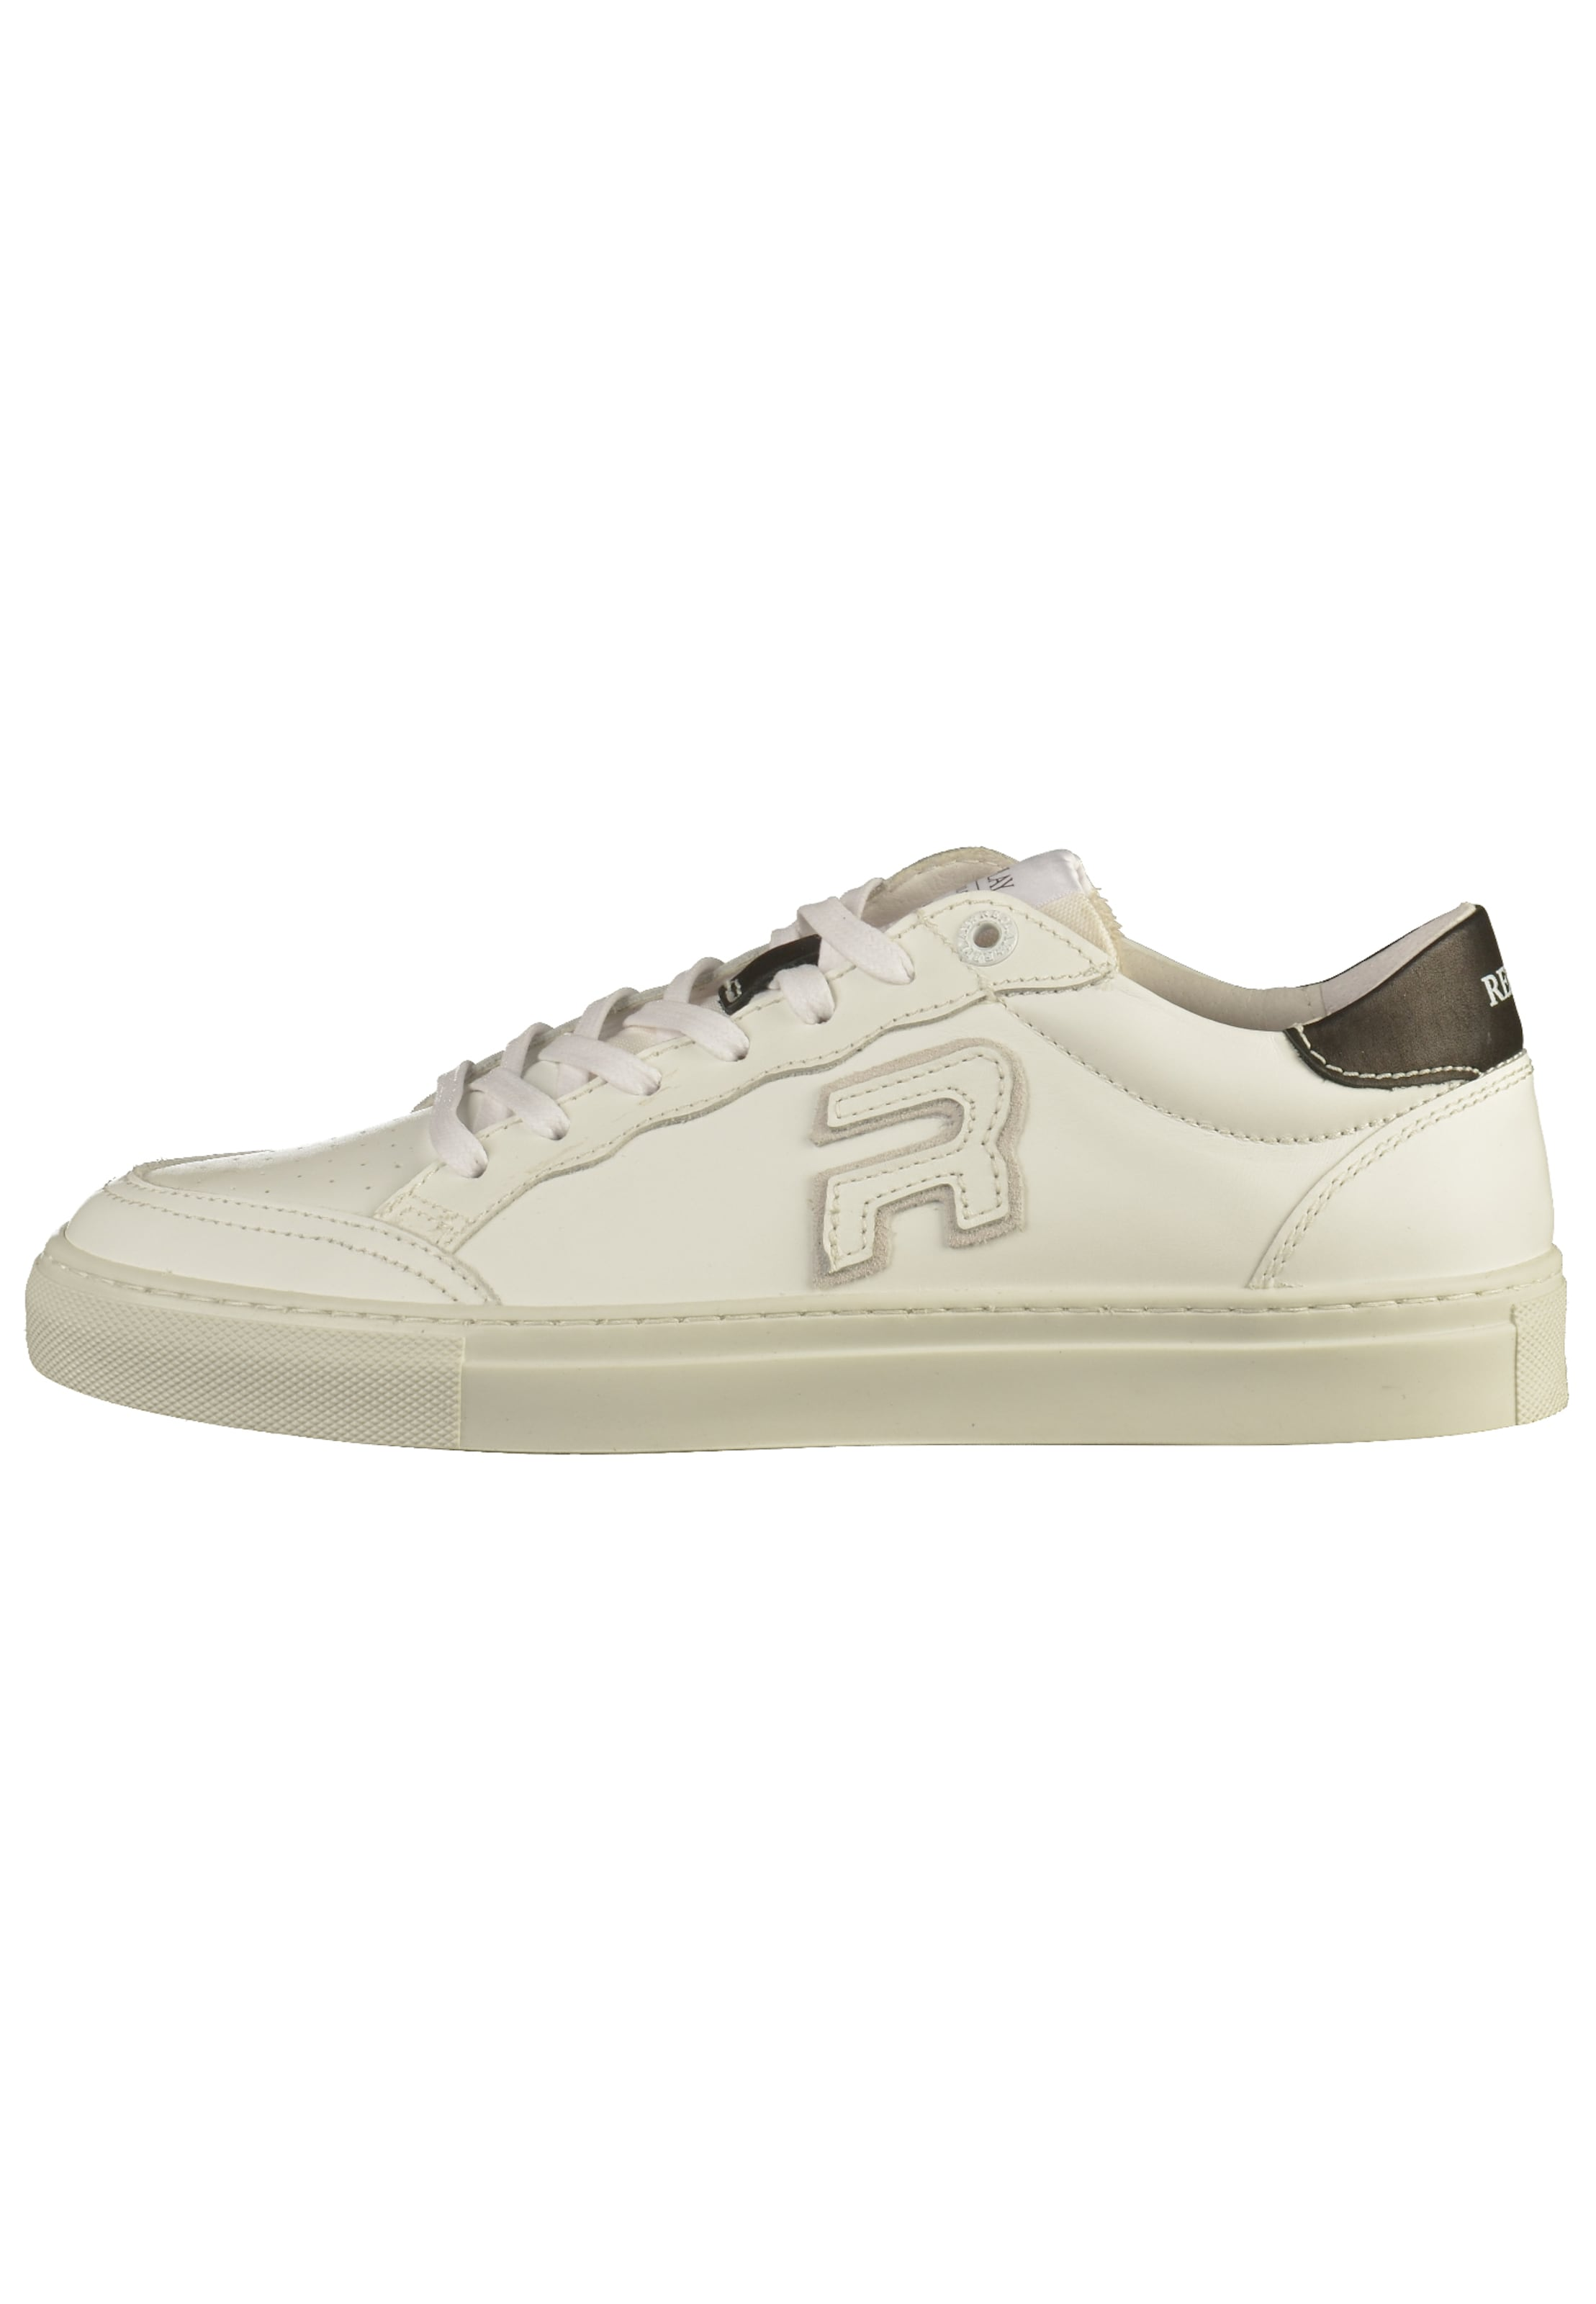 En Basses Baskets Replay Replay Basses Baskets Blanc JlKF1c